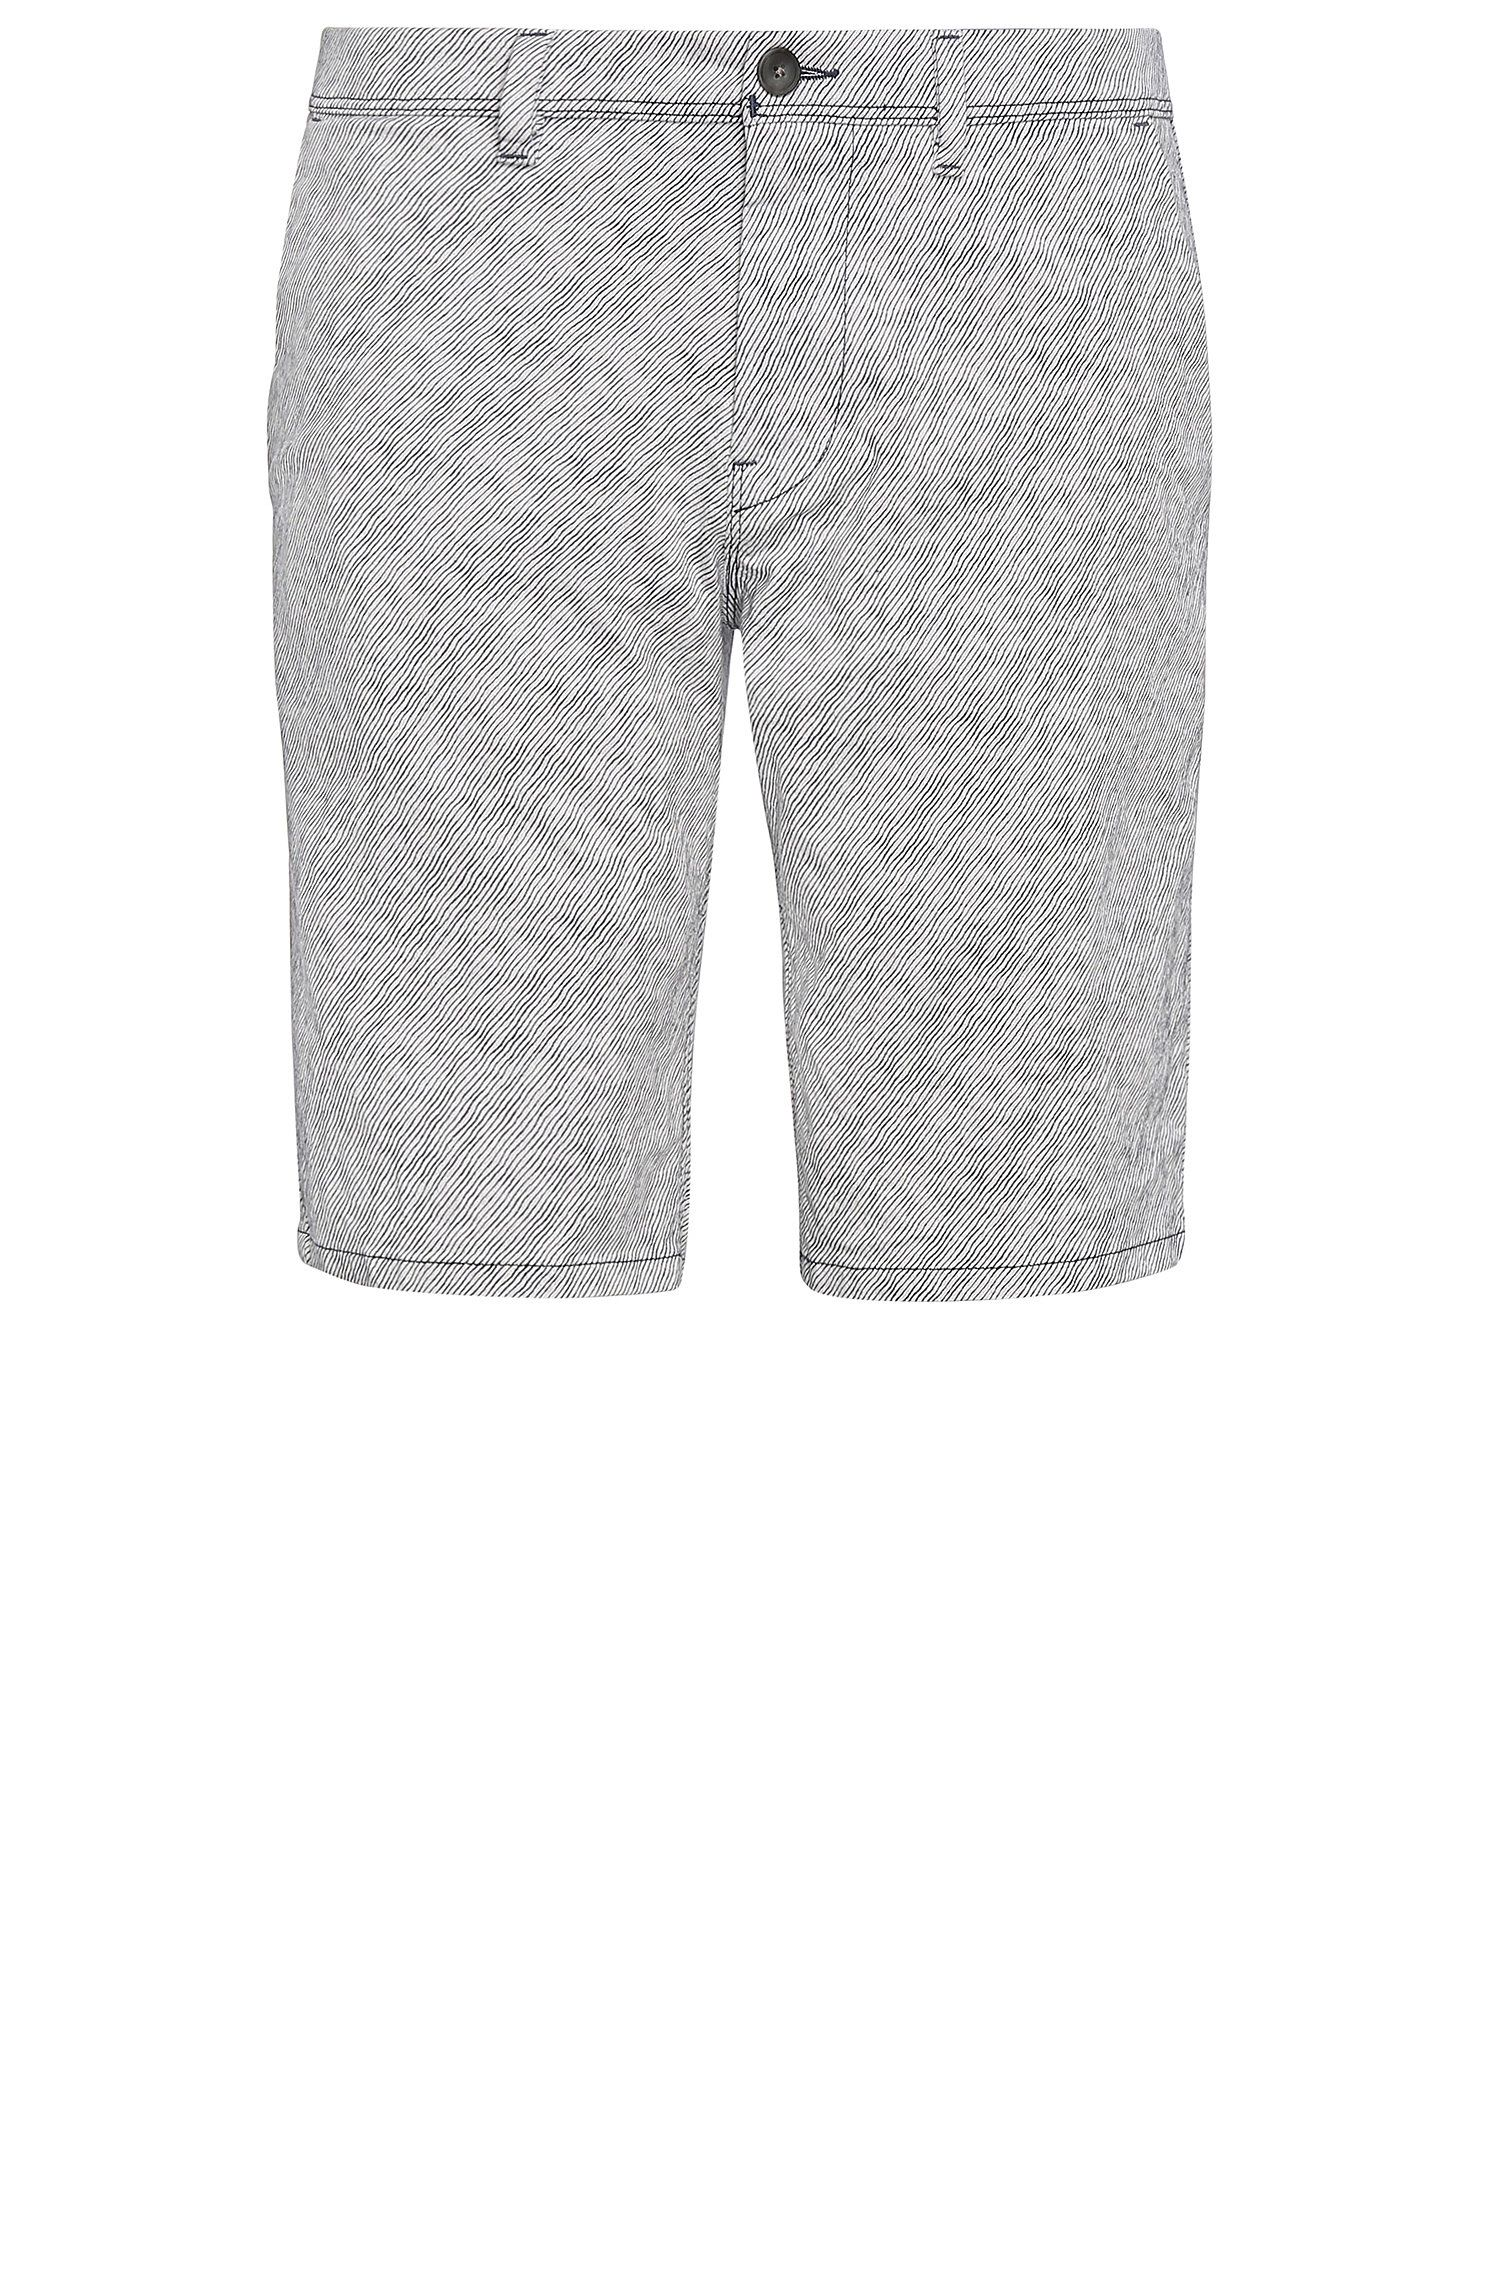 Short Slim Fit à rayures en coton stretch : « Slender-Shorts-W »